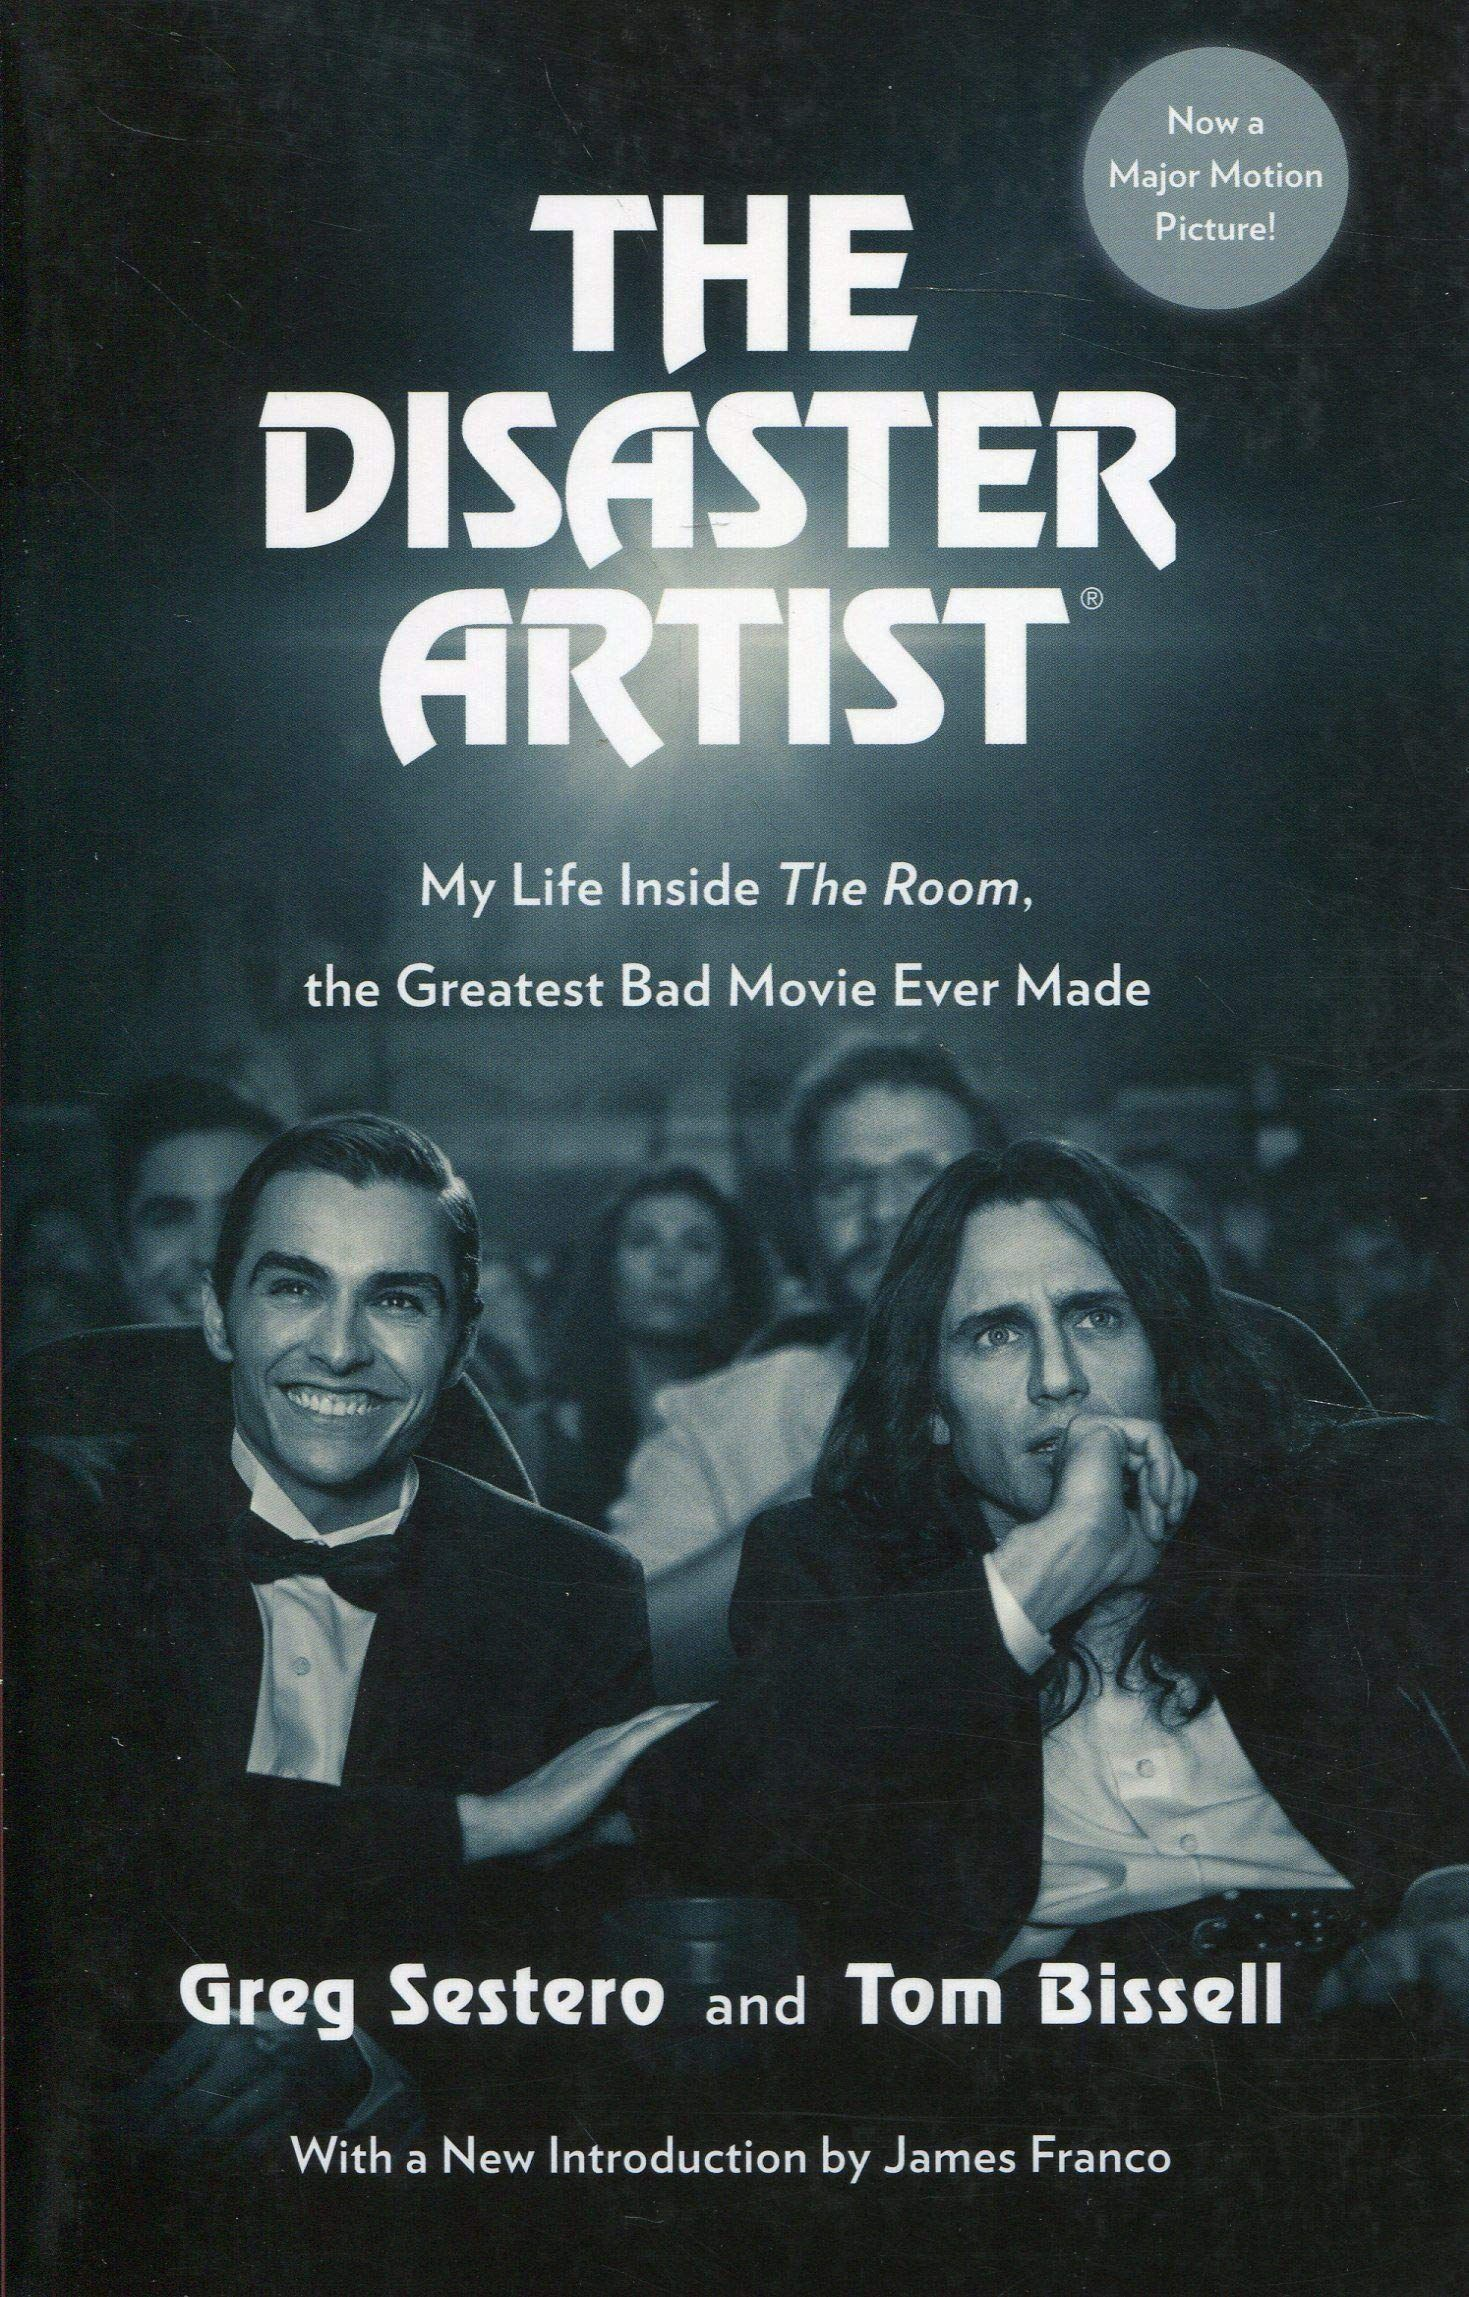 The Disaster Artist My Life Inside The Room, the Greatest